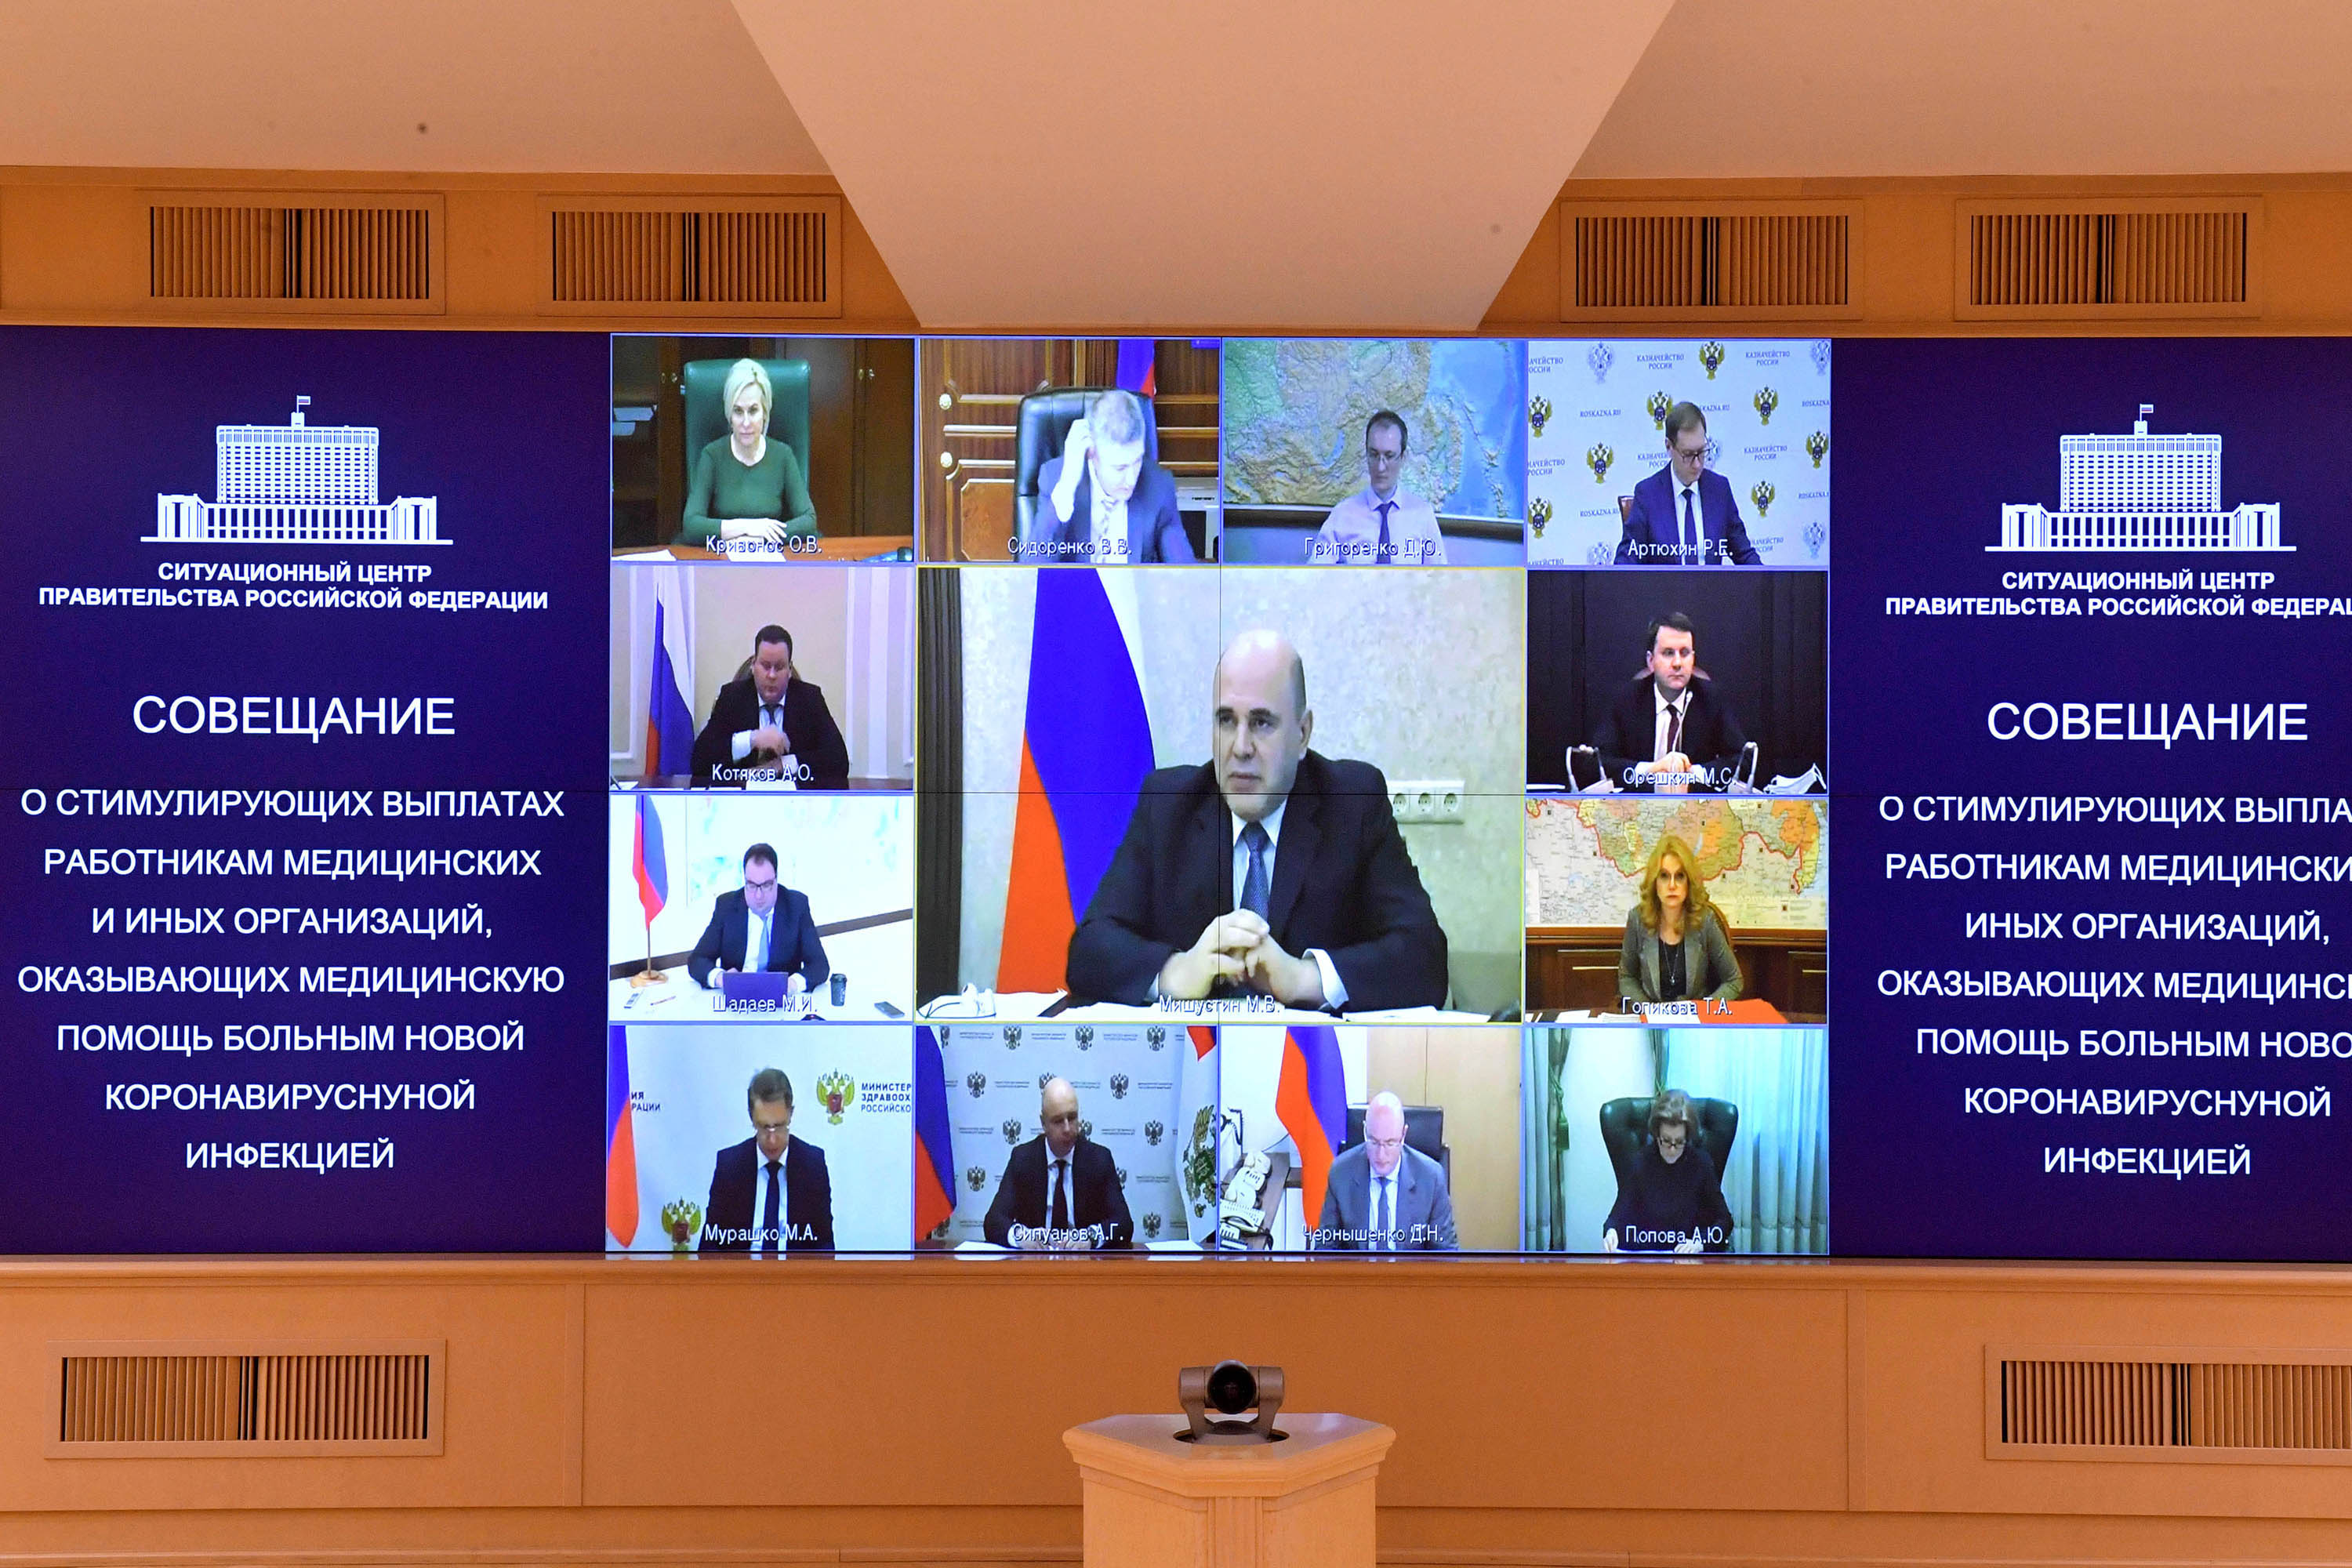 Russia's Prime Minister Mikhail Mishustin, center, during a video conference meeting on incentive payments for workers of medical organizations treating coronavirus patients in Moscow, Russia, on Monday, May 18.